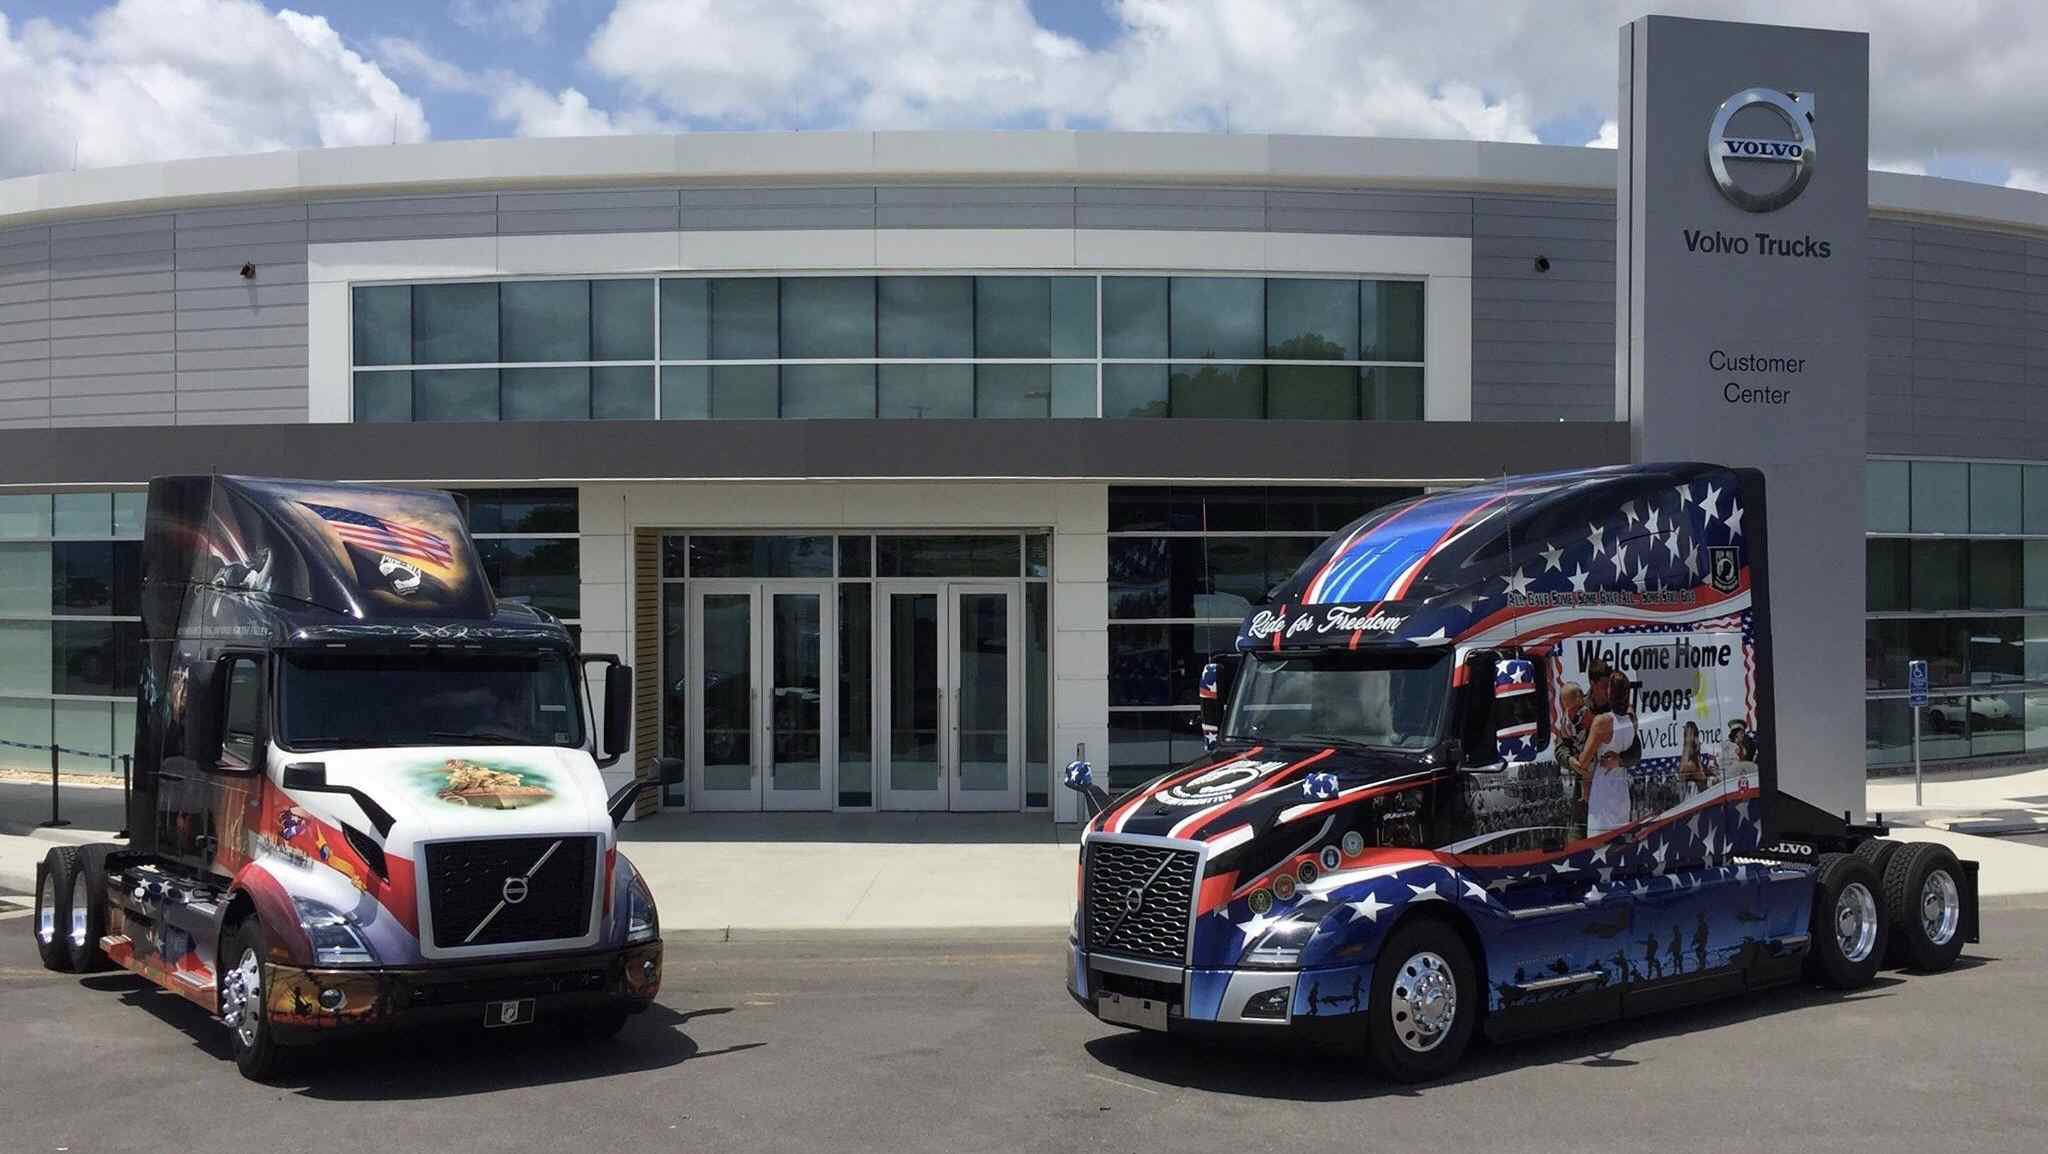 Ride for Freedom trucks debuted by Mack and Volvo